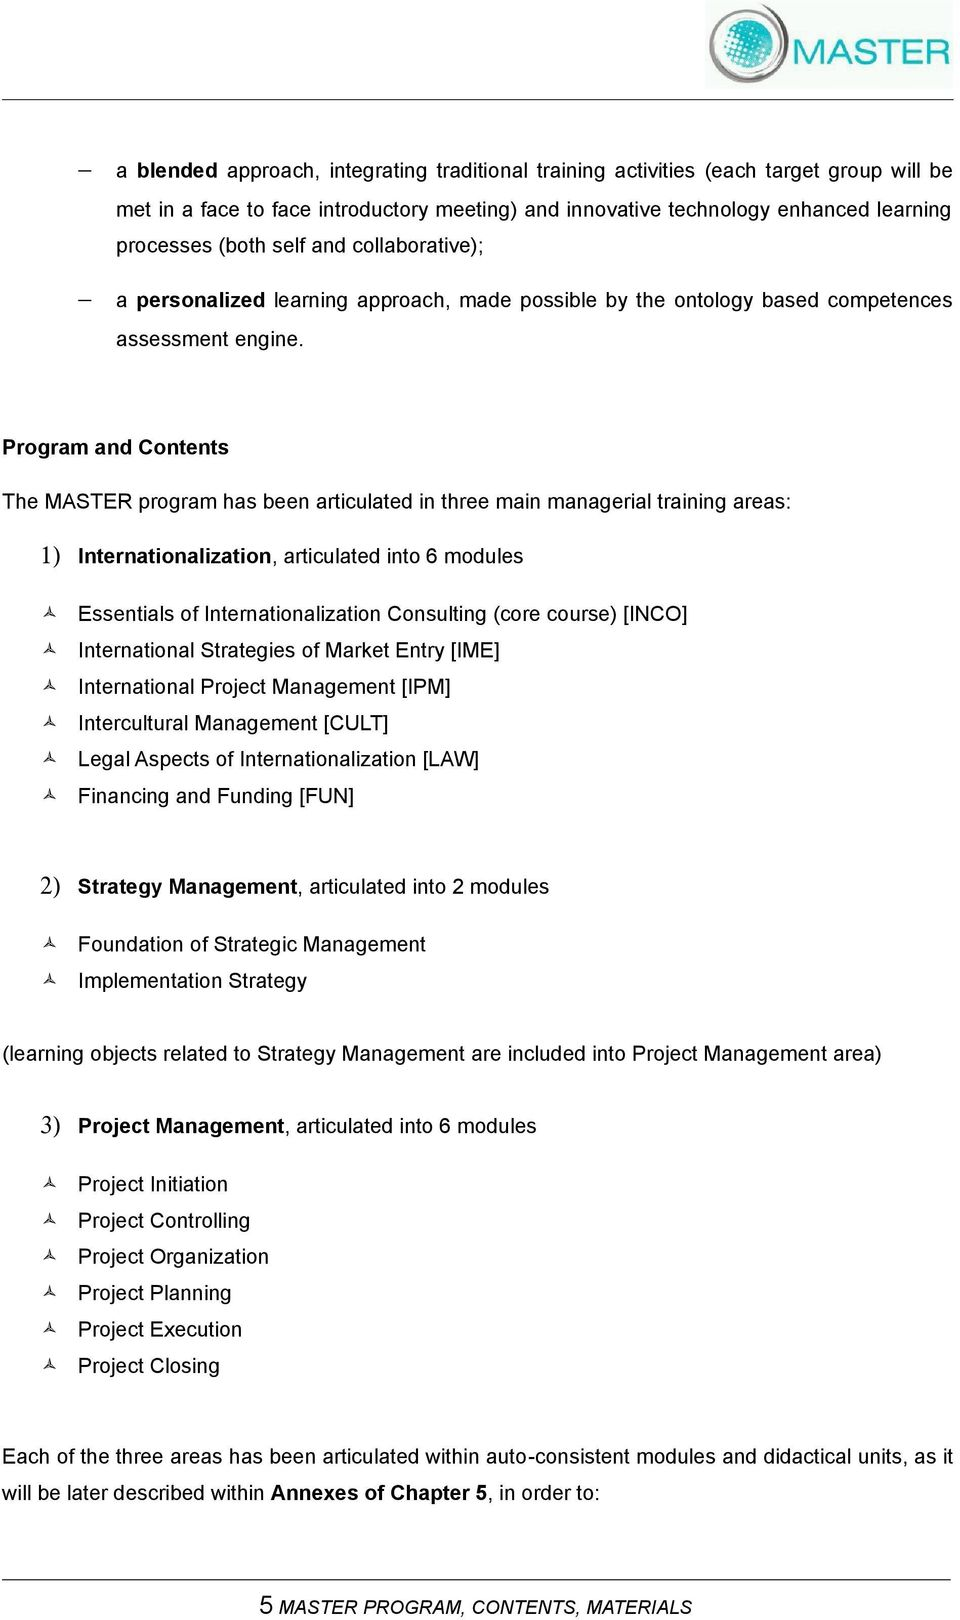 Program and Contents The MASTER program has been articulated in three main managerial training areas: 1) Internationalization, articulated into 6 modules Essentials of Internationalization Consulting